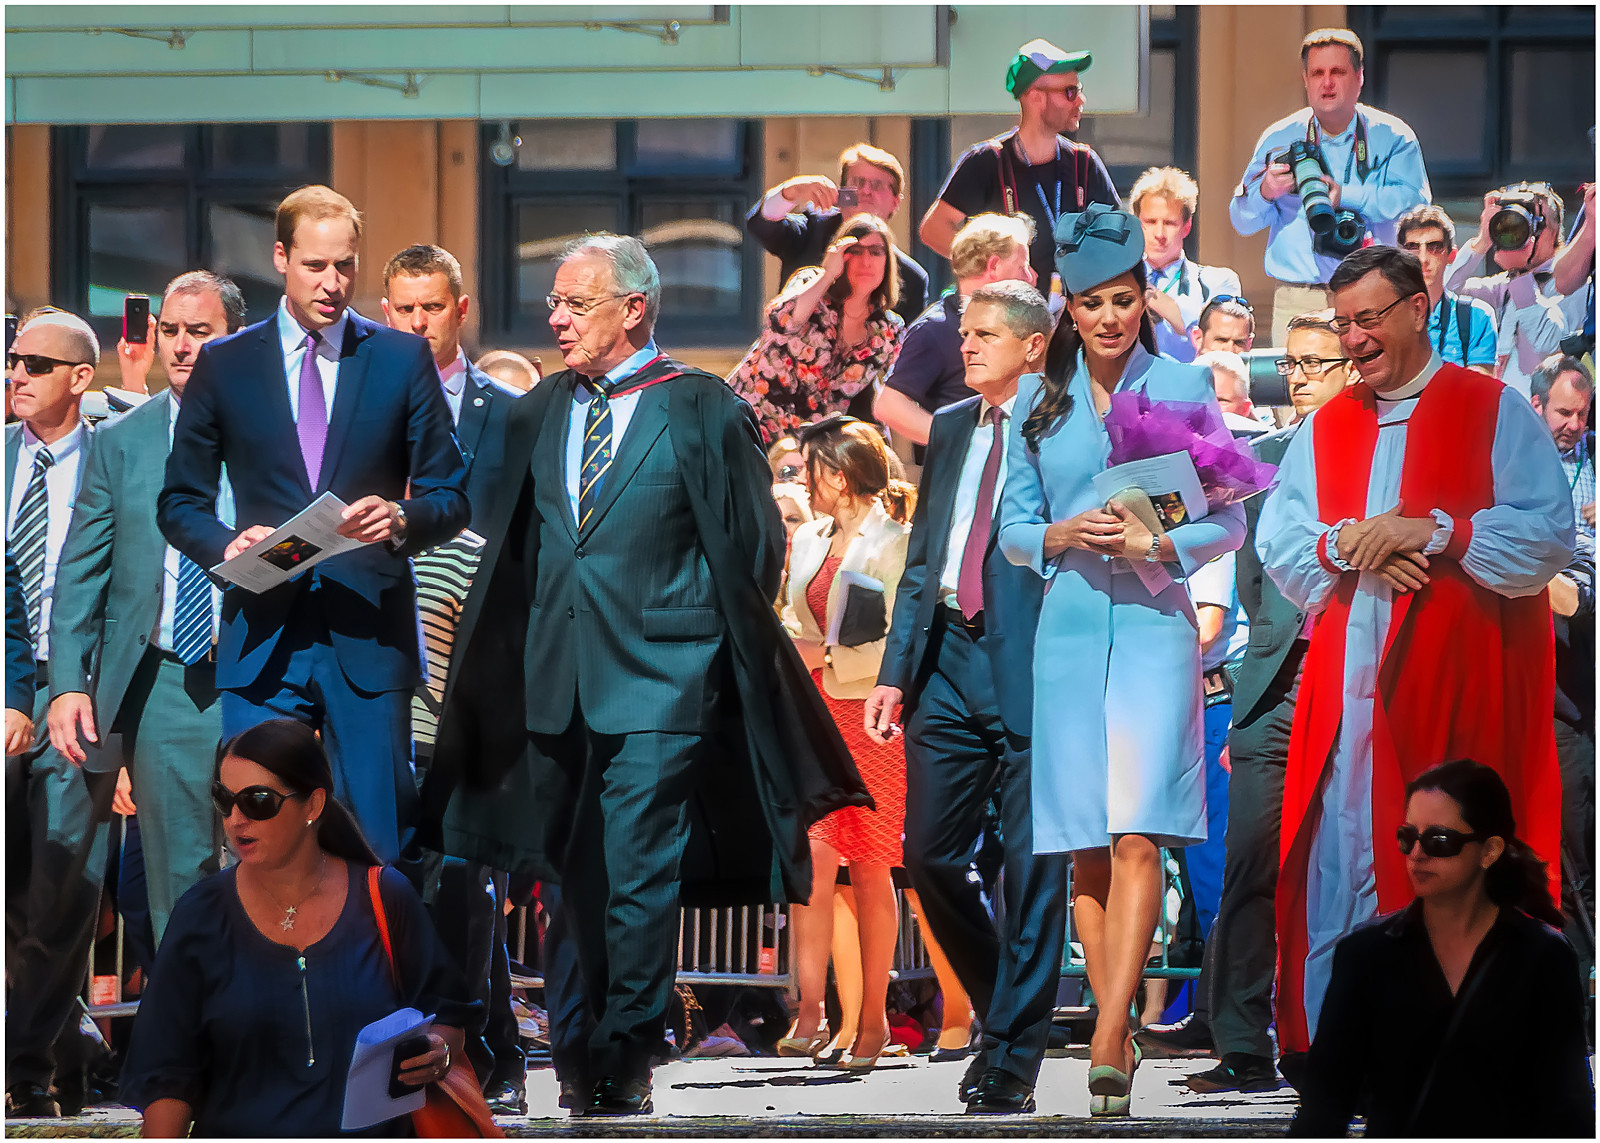 PDI - Will and Kate Leave St. Andrews Cathedral by Anthony Crosby (11 marks)